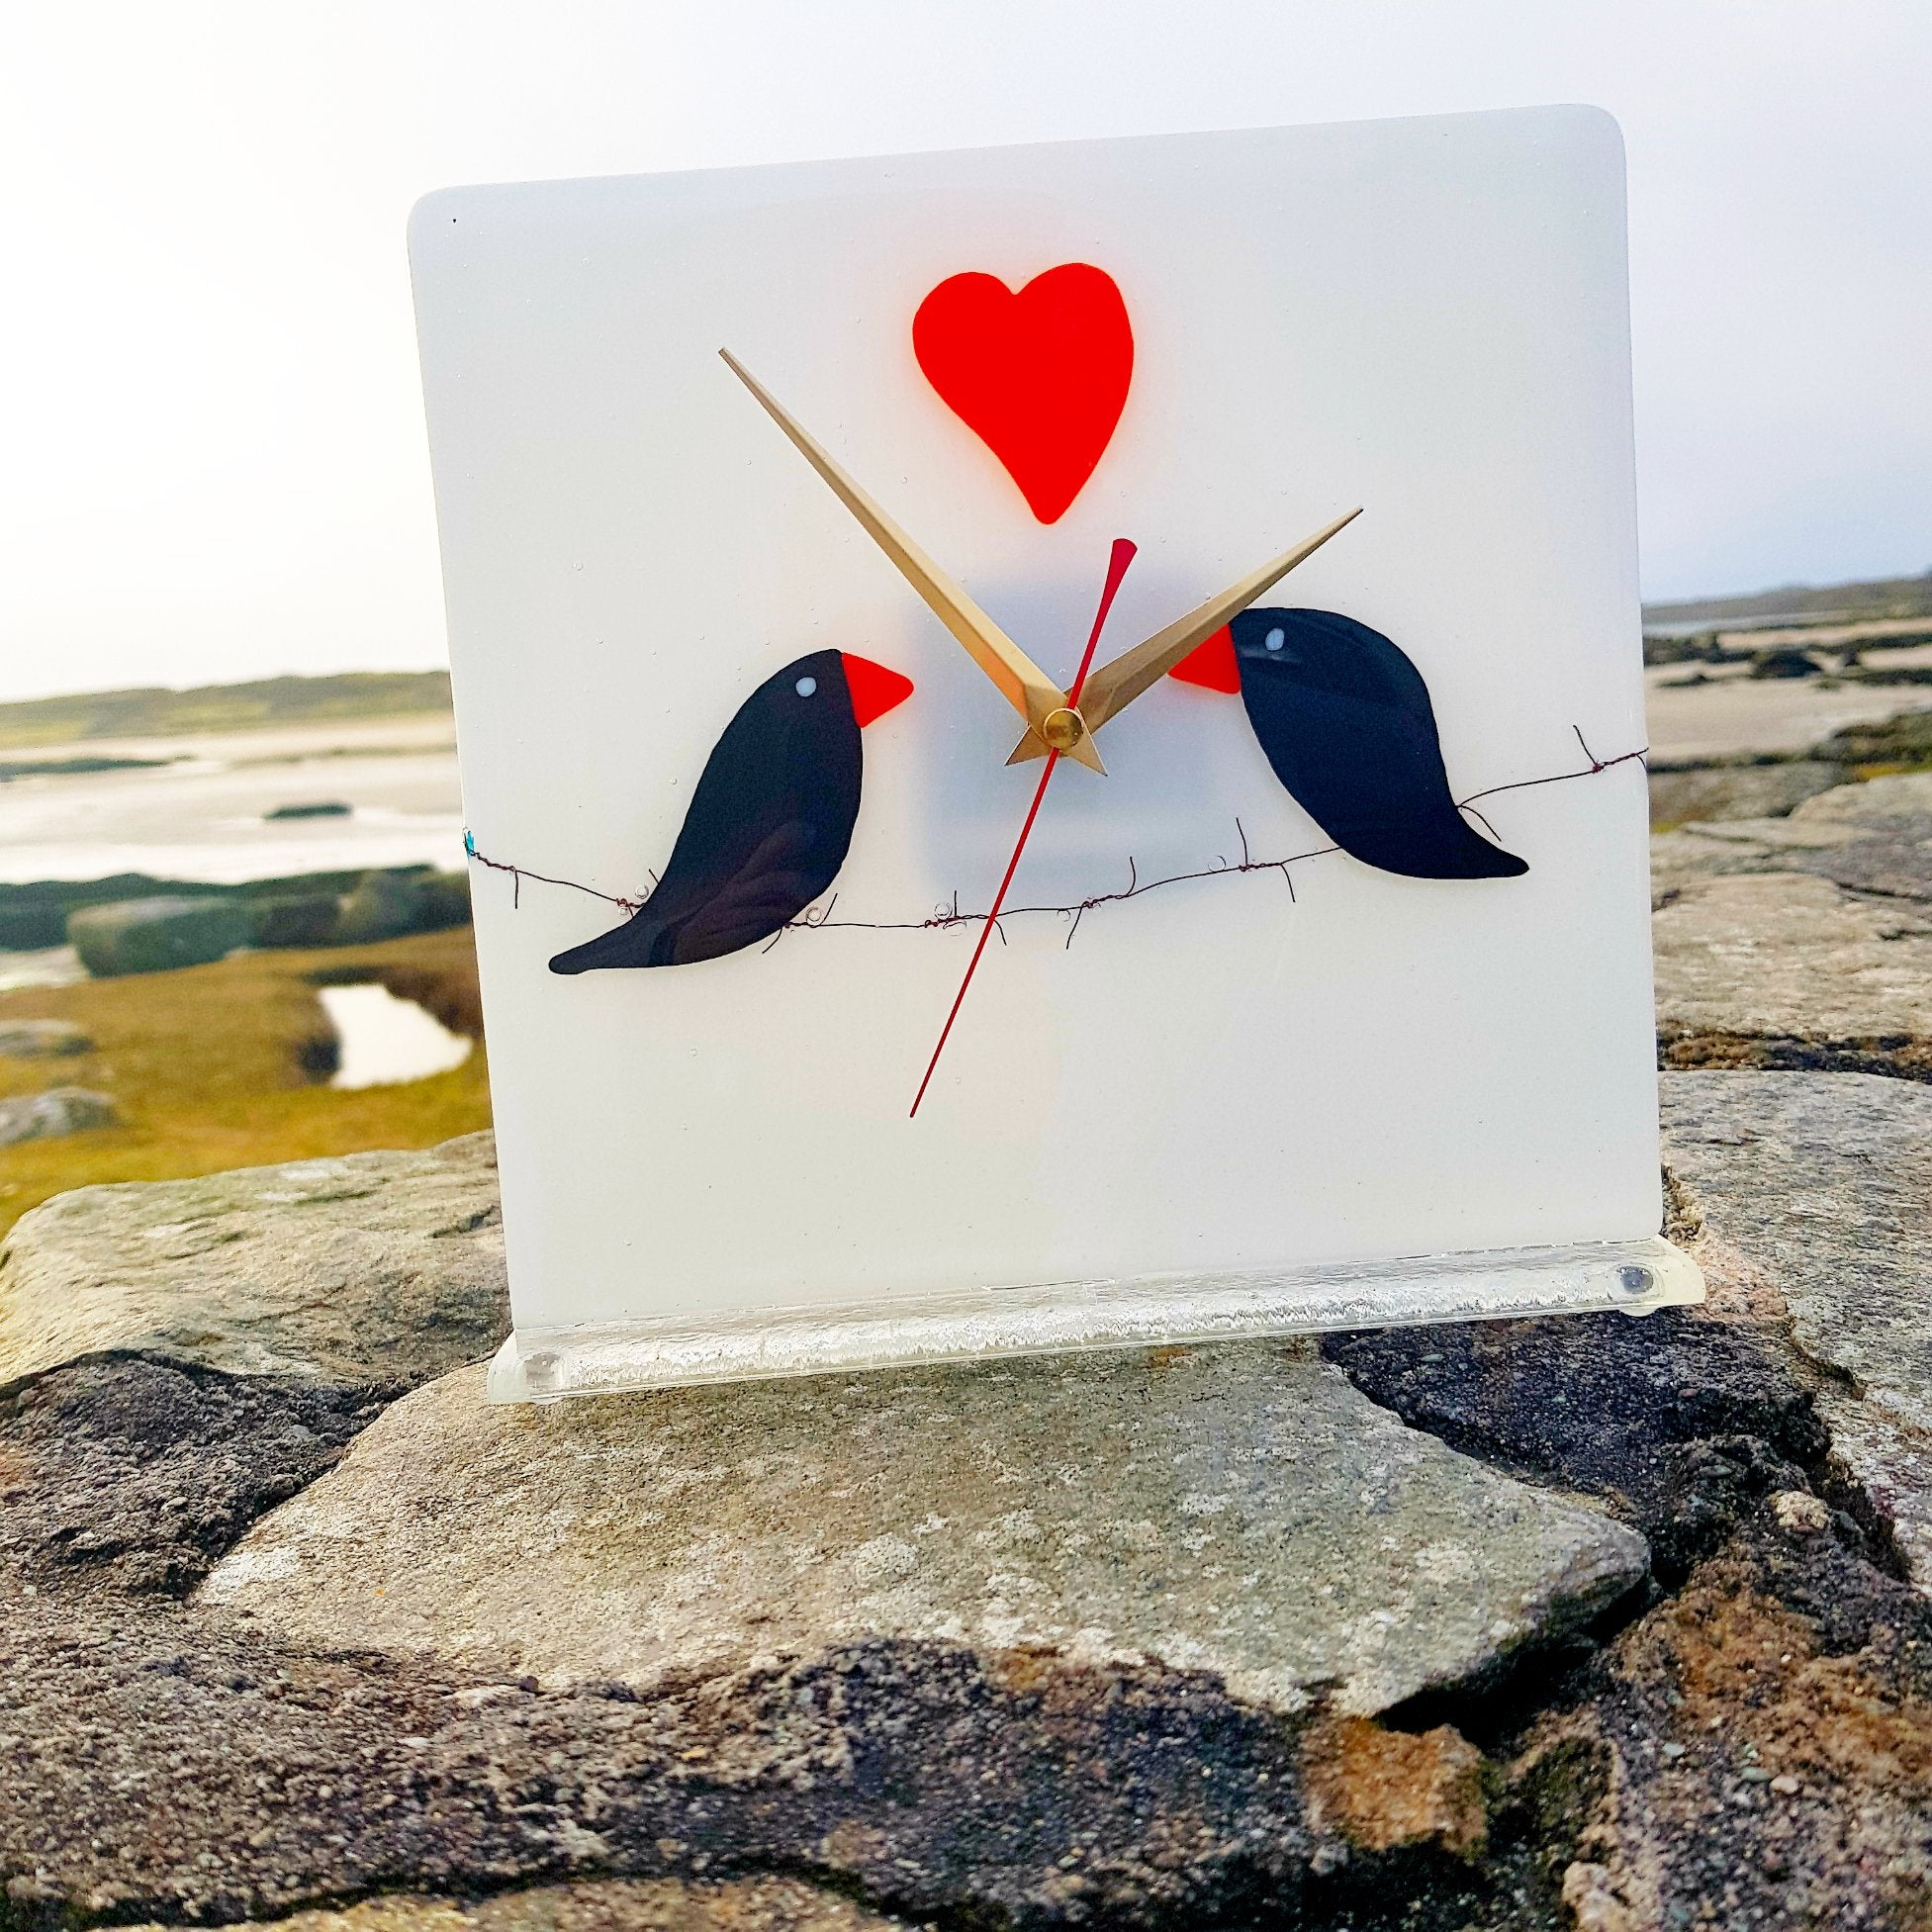 A freestanding white glass clock featuring two black birds in love, sitting on barbed wire, with an orange heart motive. A lovely gift for someone special